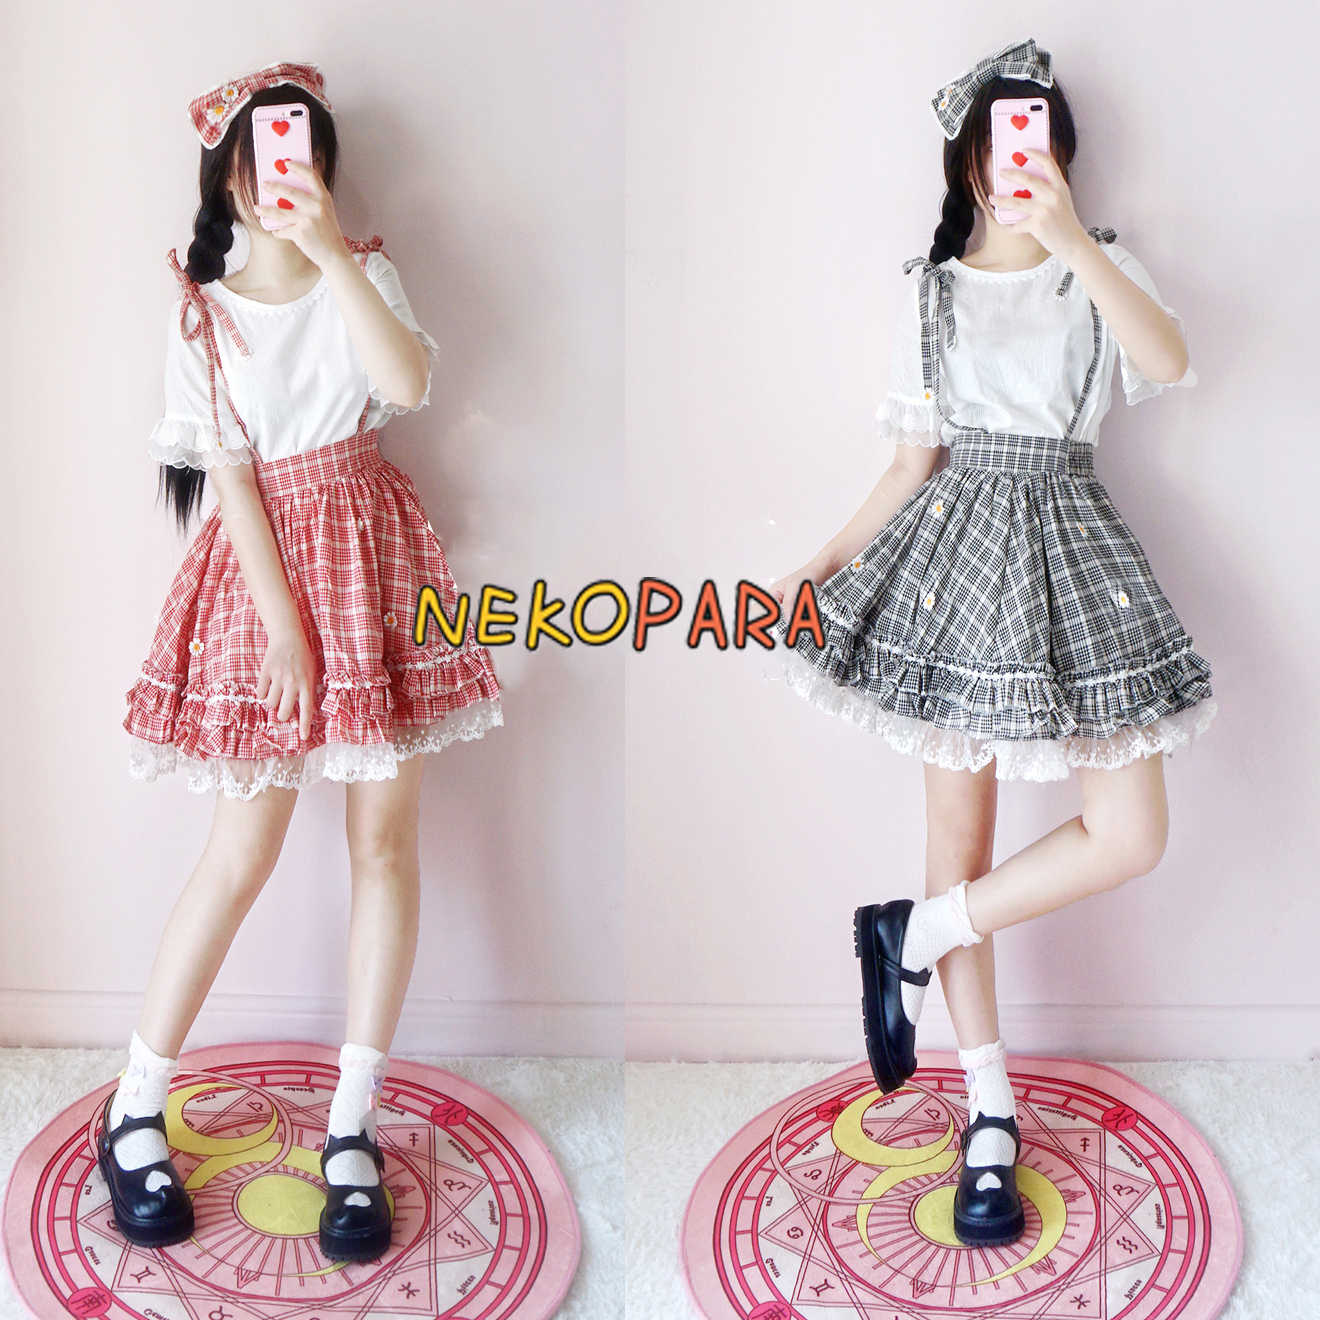 Summer Daisy Cute Women's 2PCS Set: White Round Collar Hollow Out T-shirt Tee + Plaid Checks Suspender Skirt 2 Colors